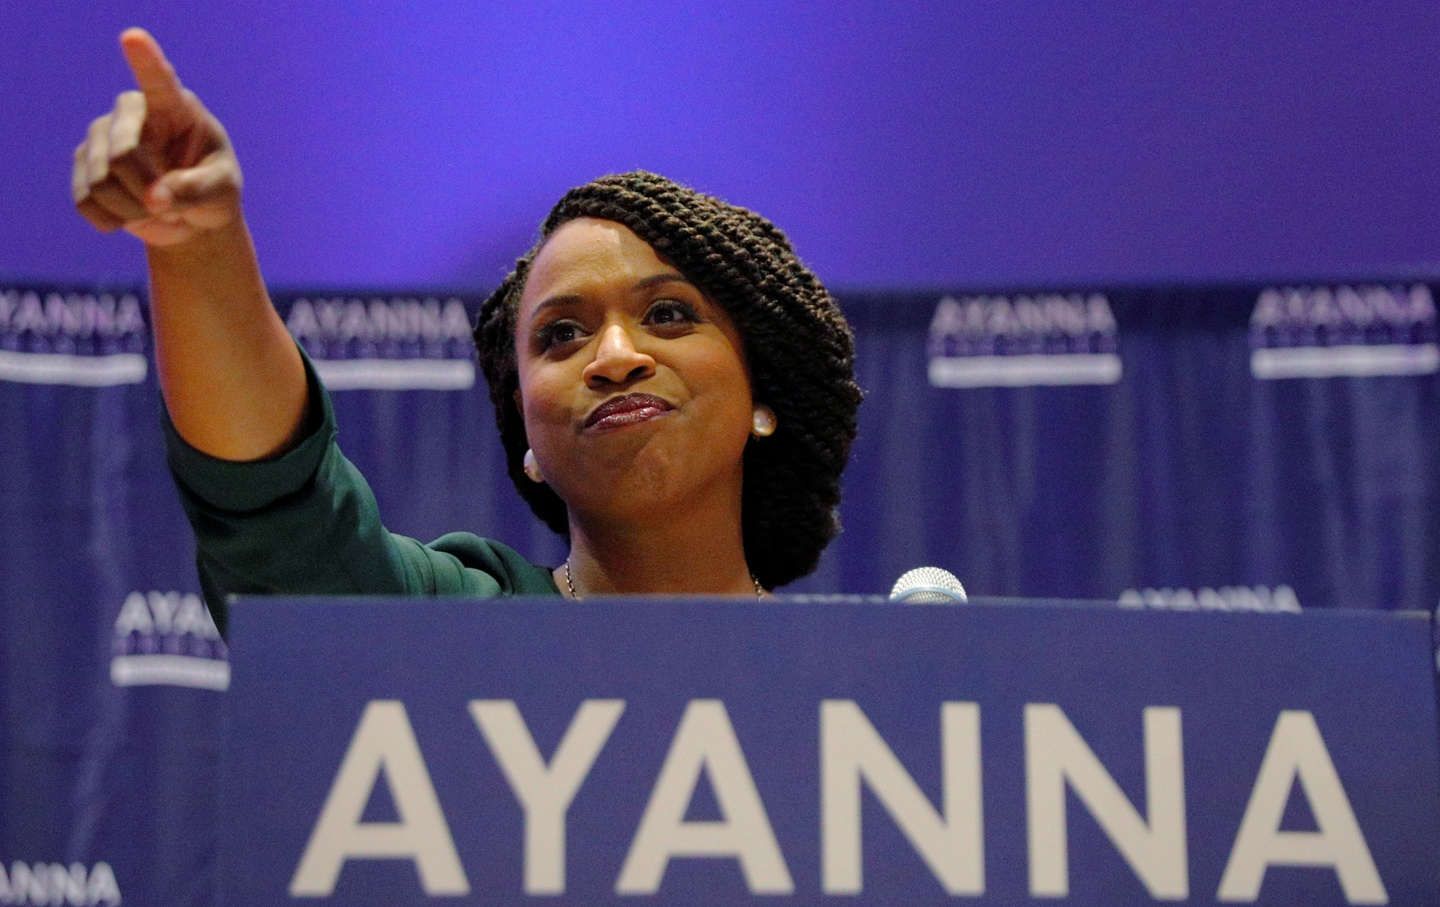 Winning Political Influence in the Digital Age: Lessons from Ayanna Pressley's victory